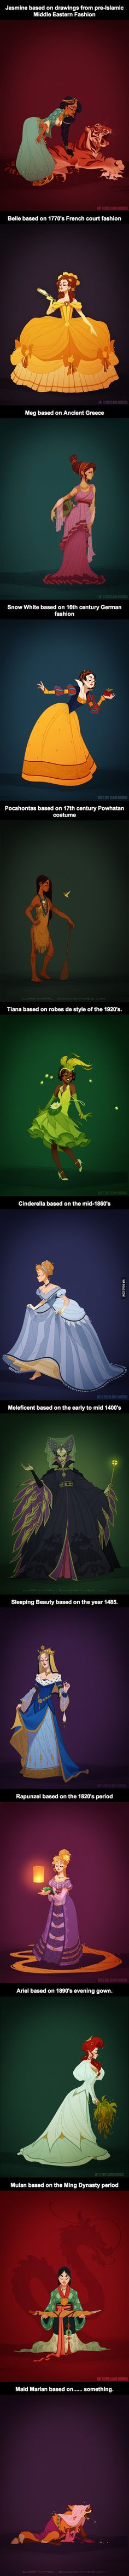 Disney Princesses Ba